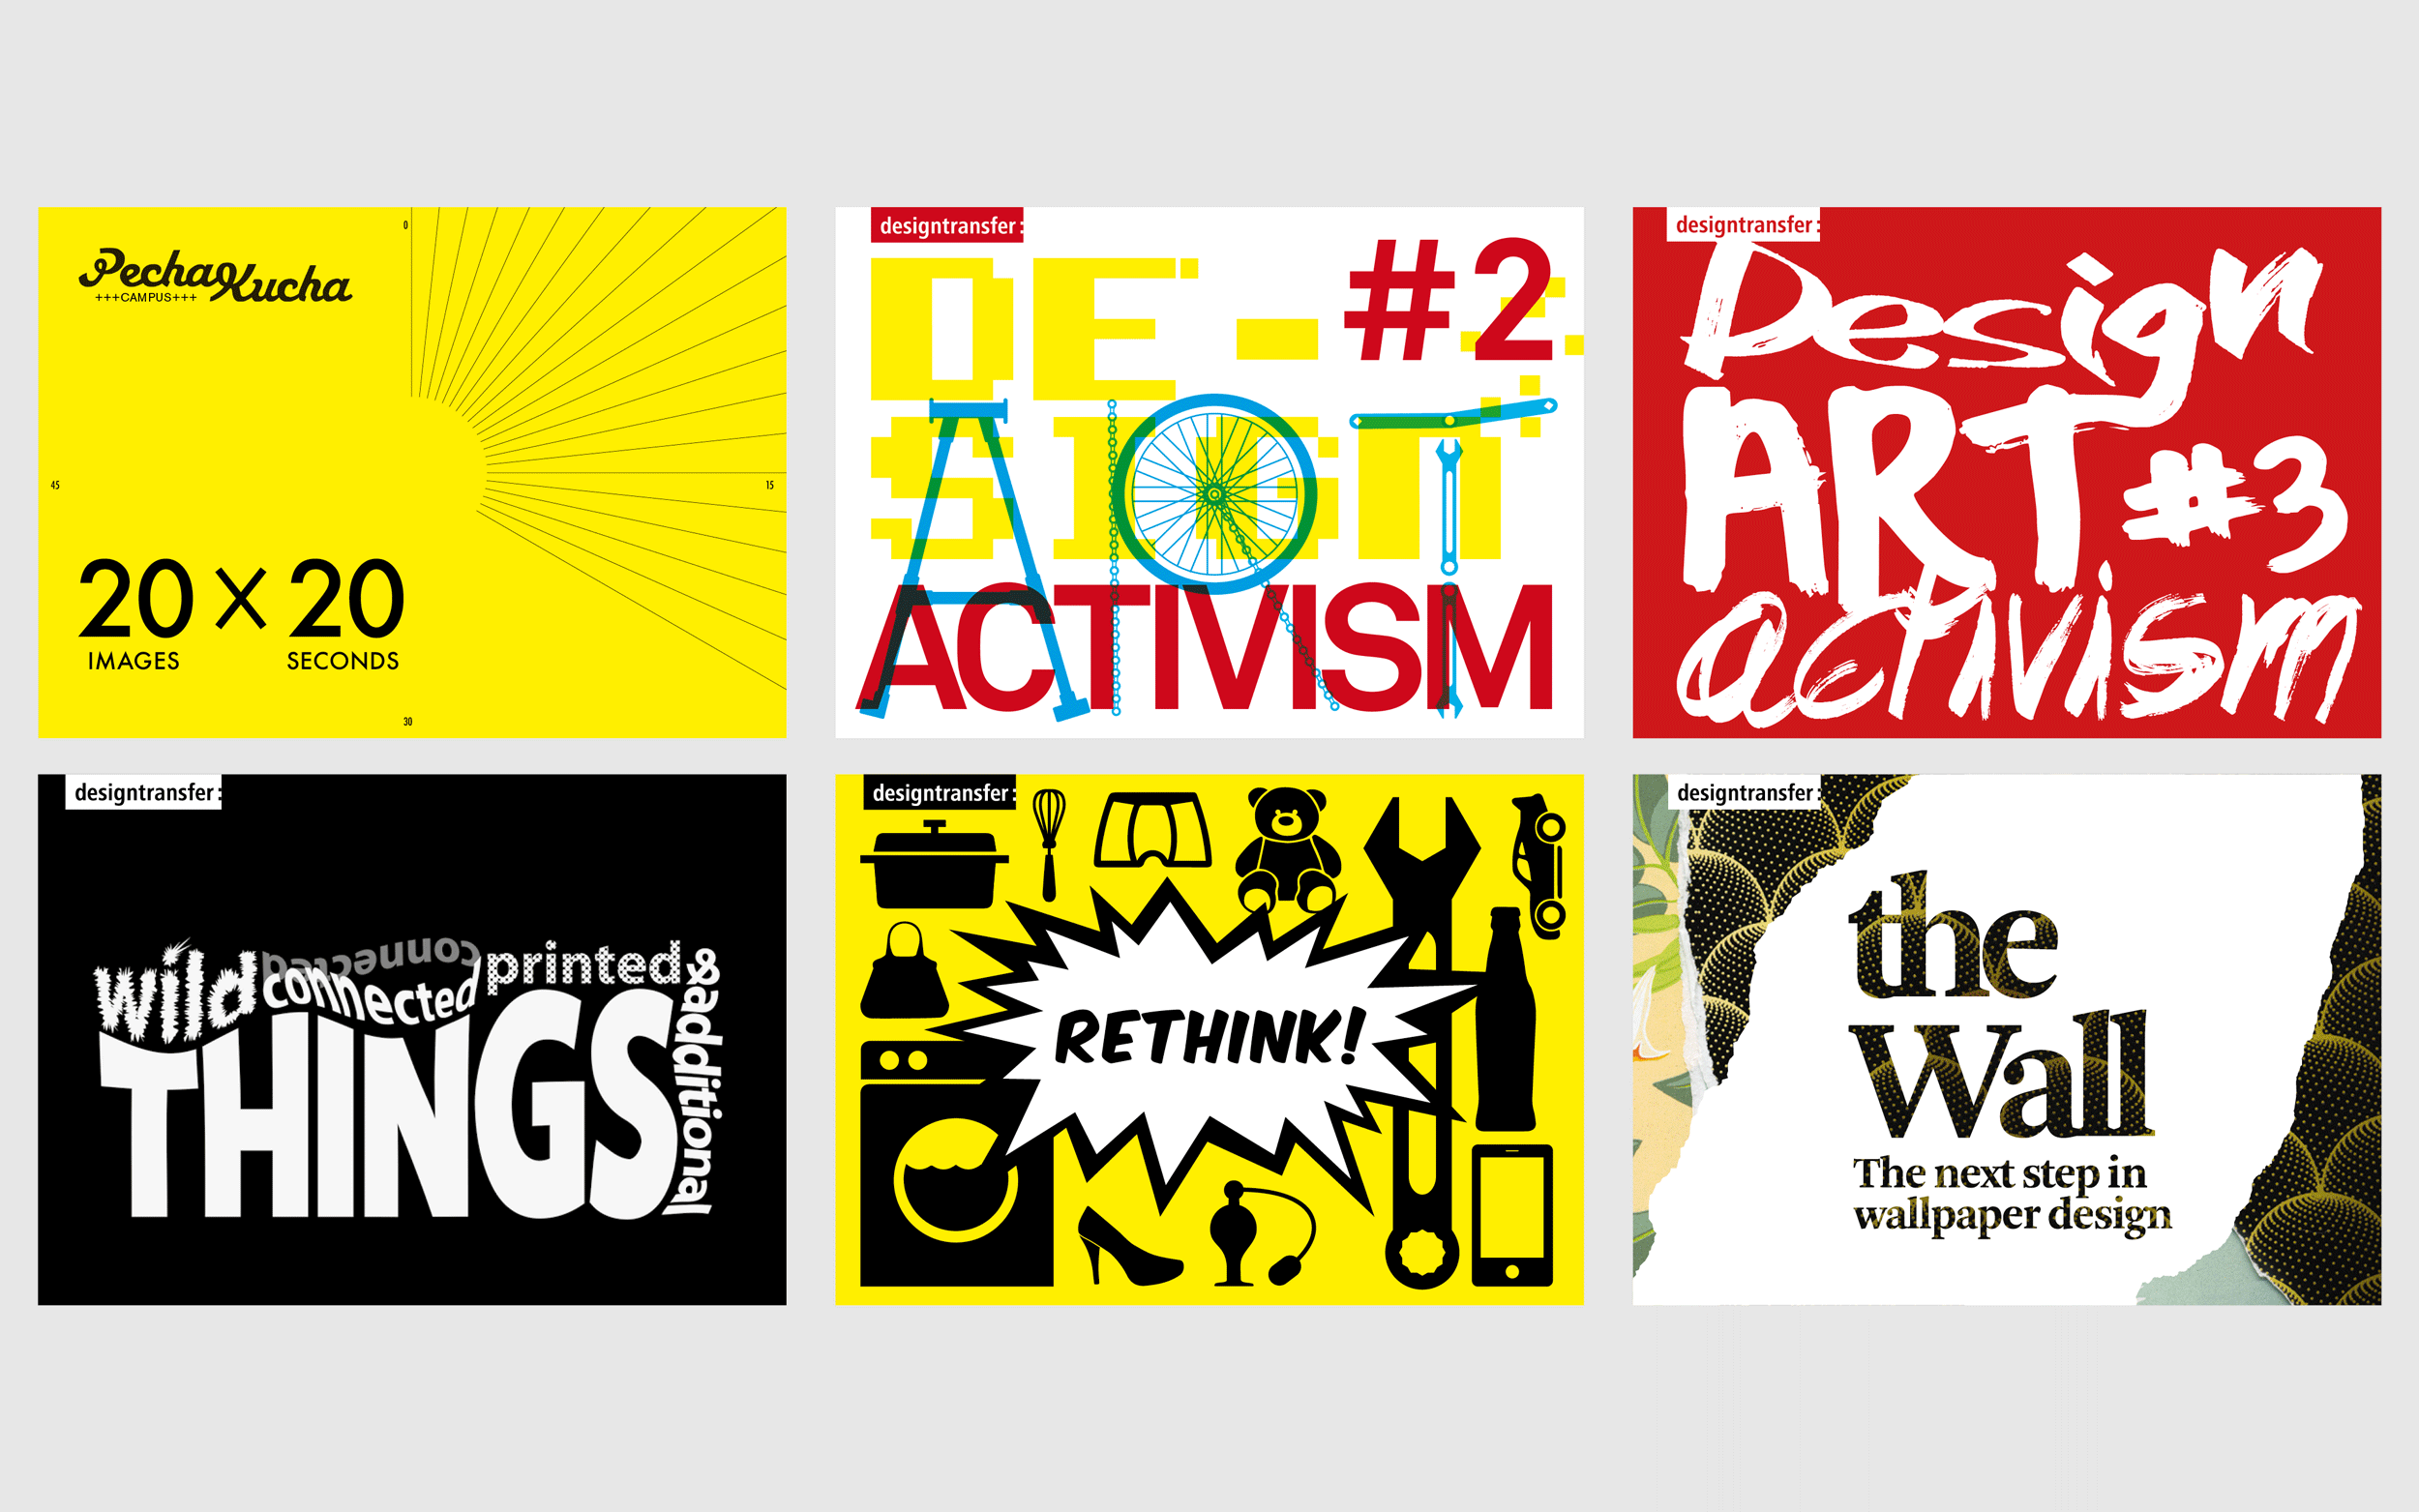 Graphic design work done by Young Sam Kim for the designtransfer gallery in Berlin.